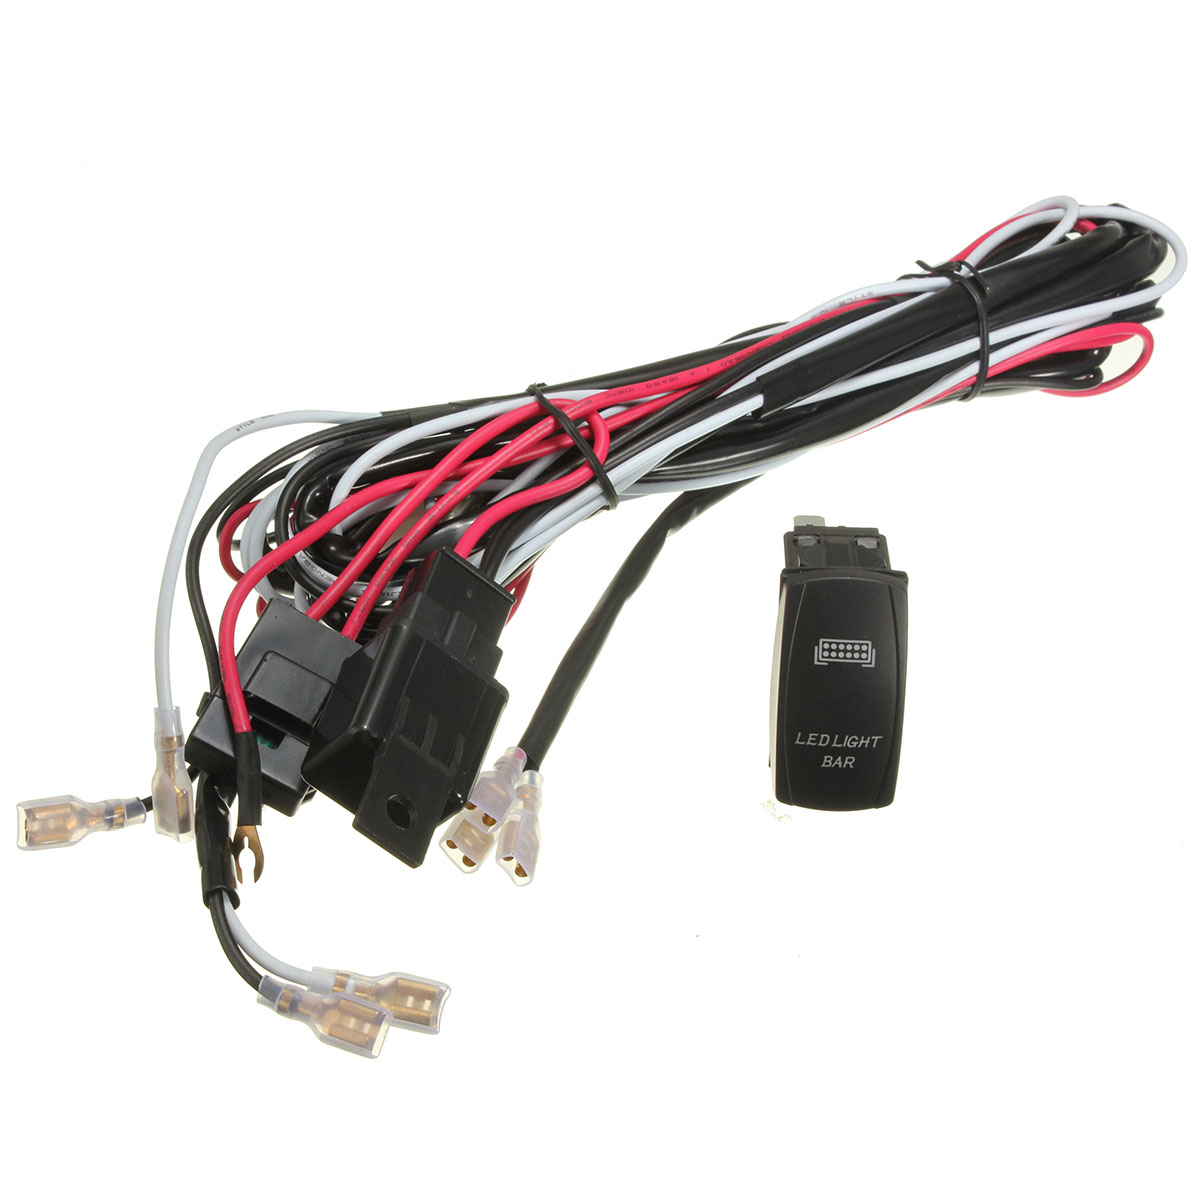 atv/jeep led light bar wiring harness 12v 40a relay on/off ... 12 volt atv wire harness